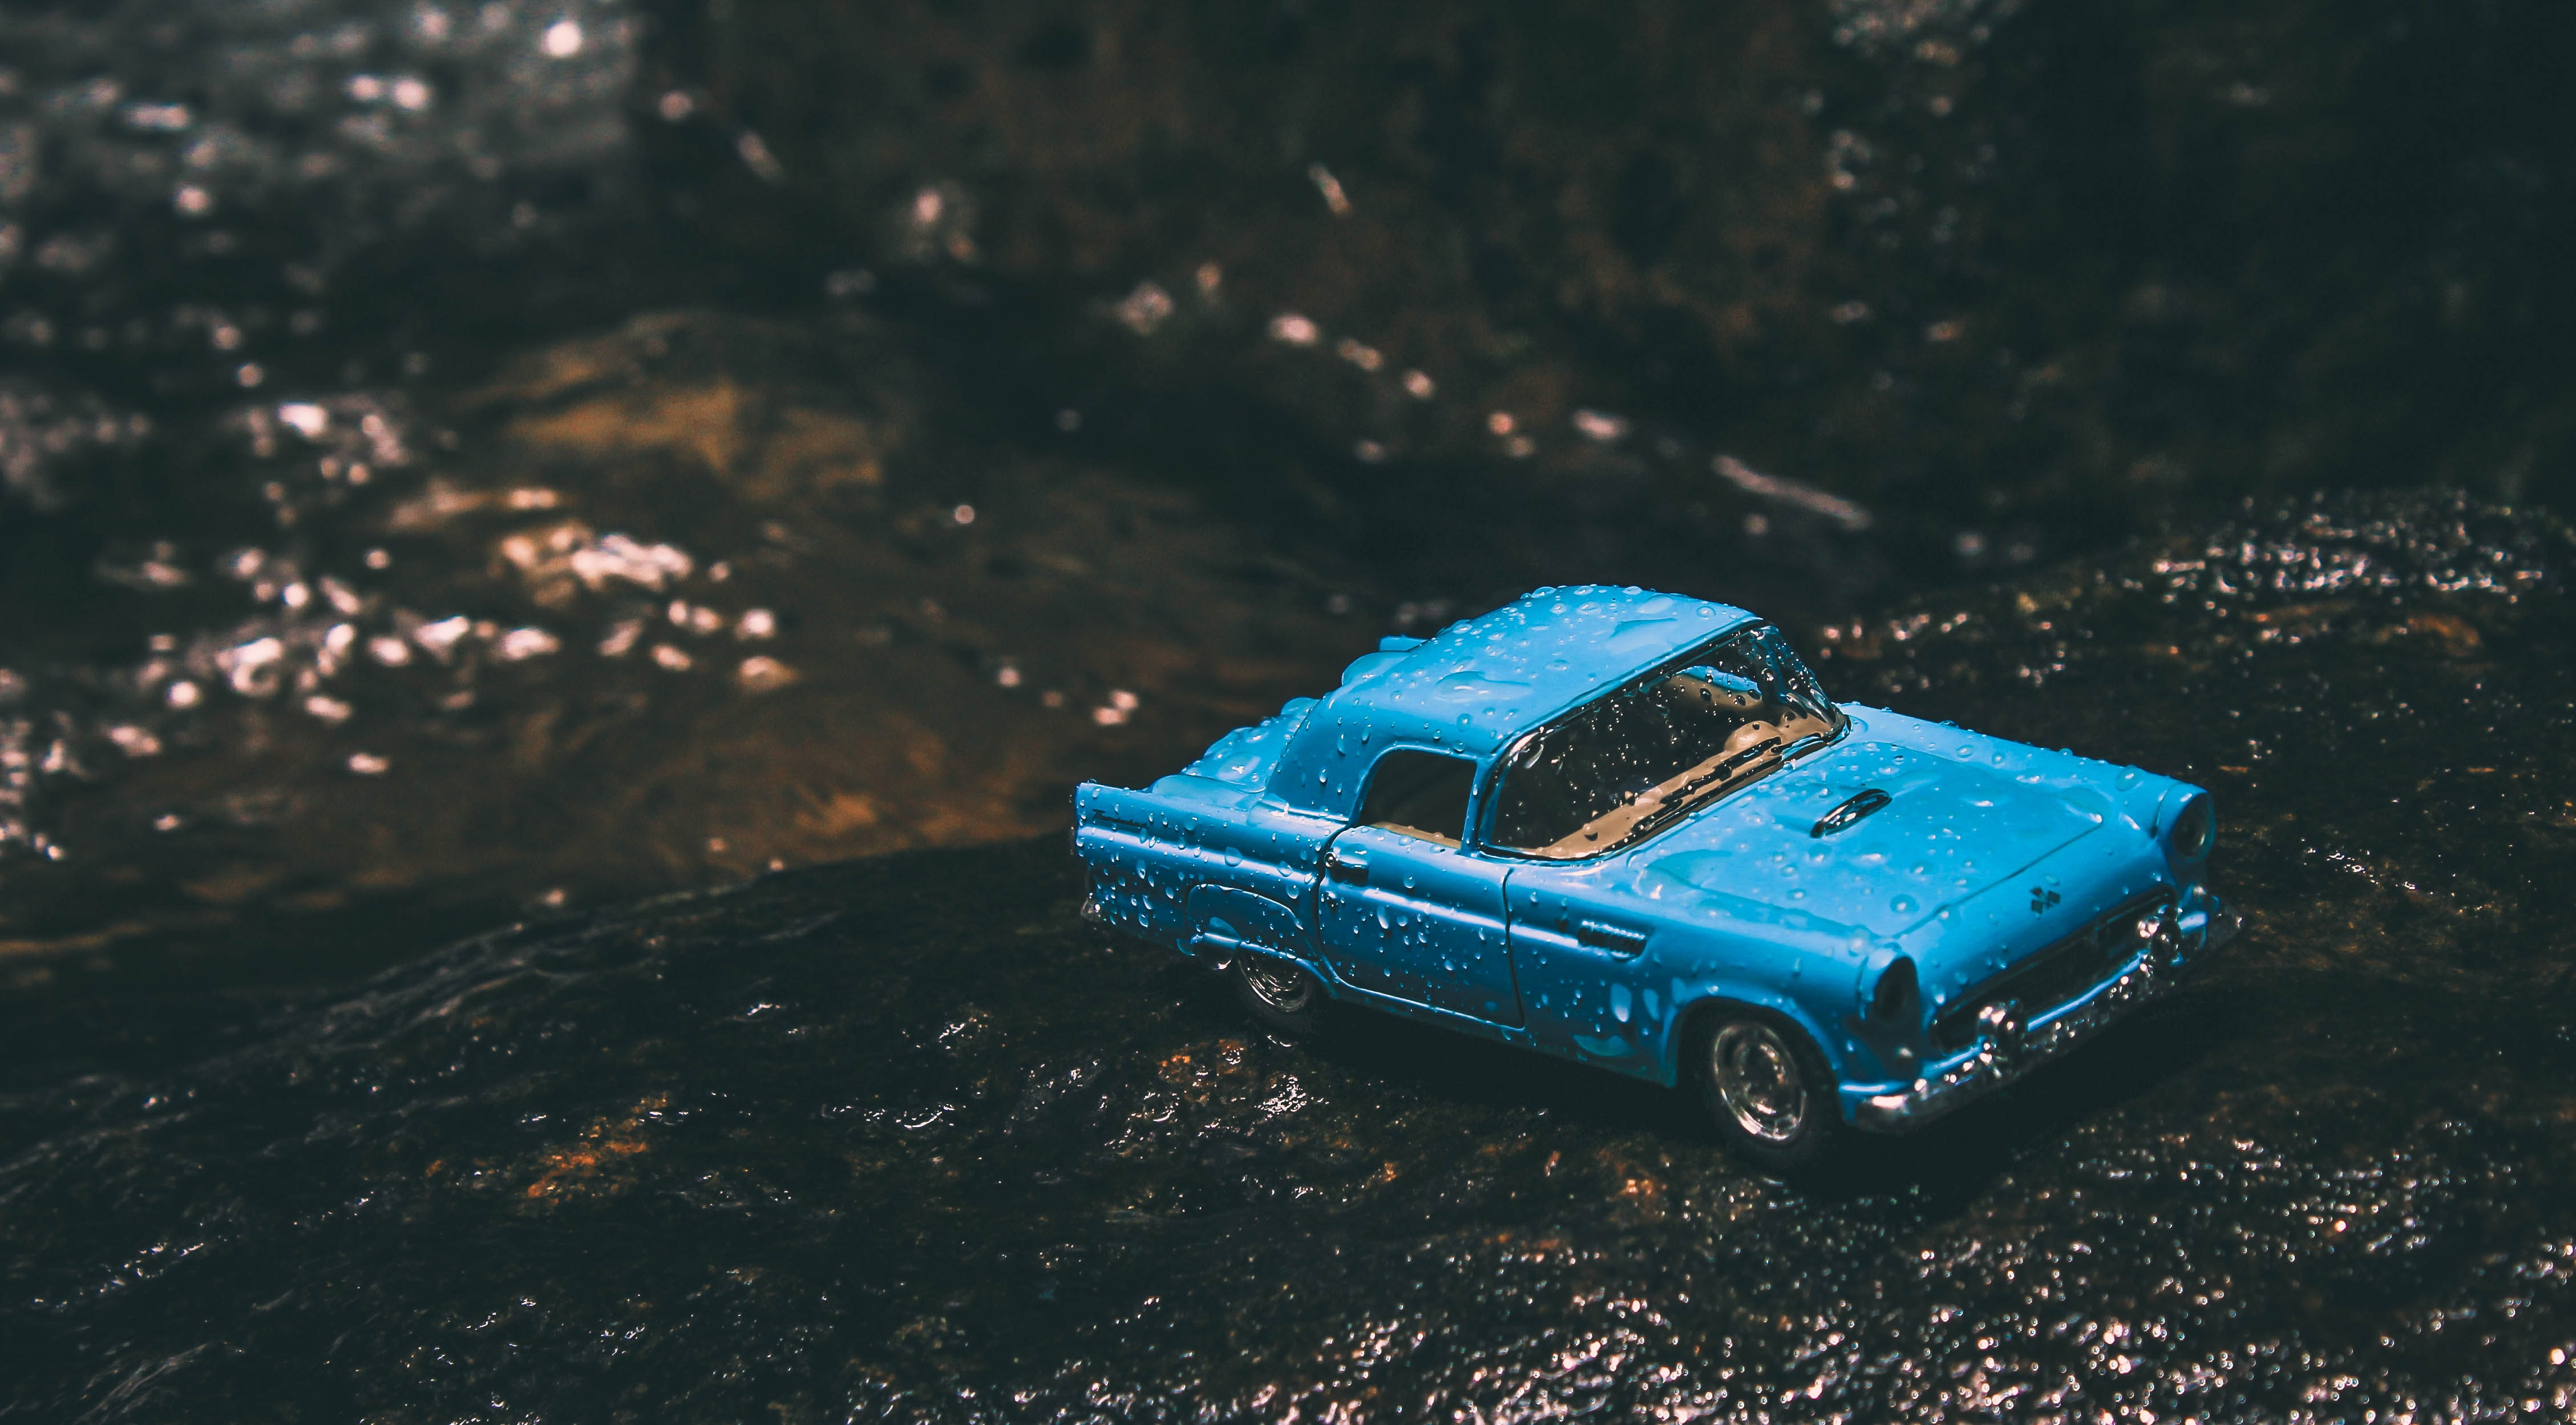 A blue toy car driving through the wet dirt on a forest ground